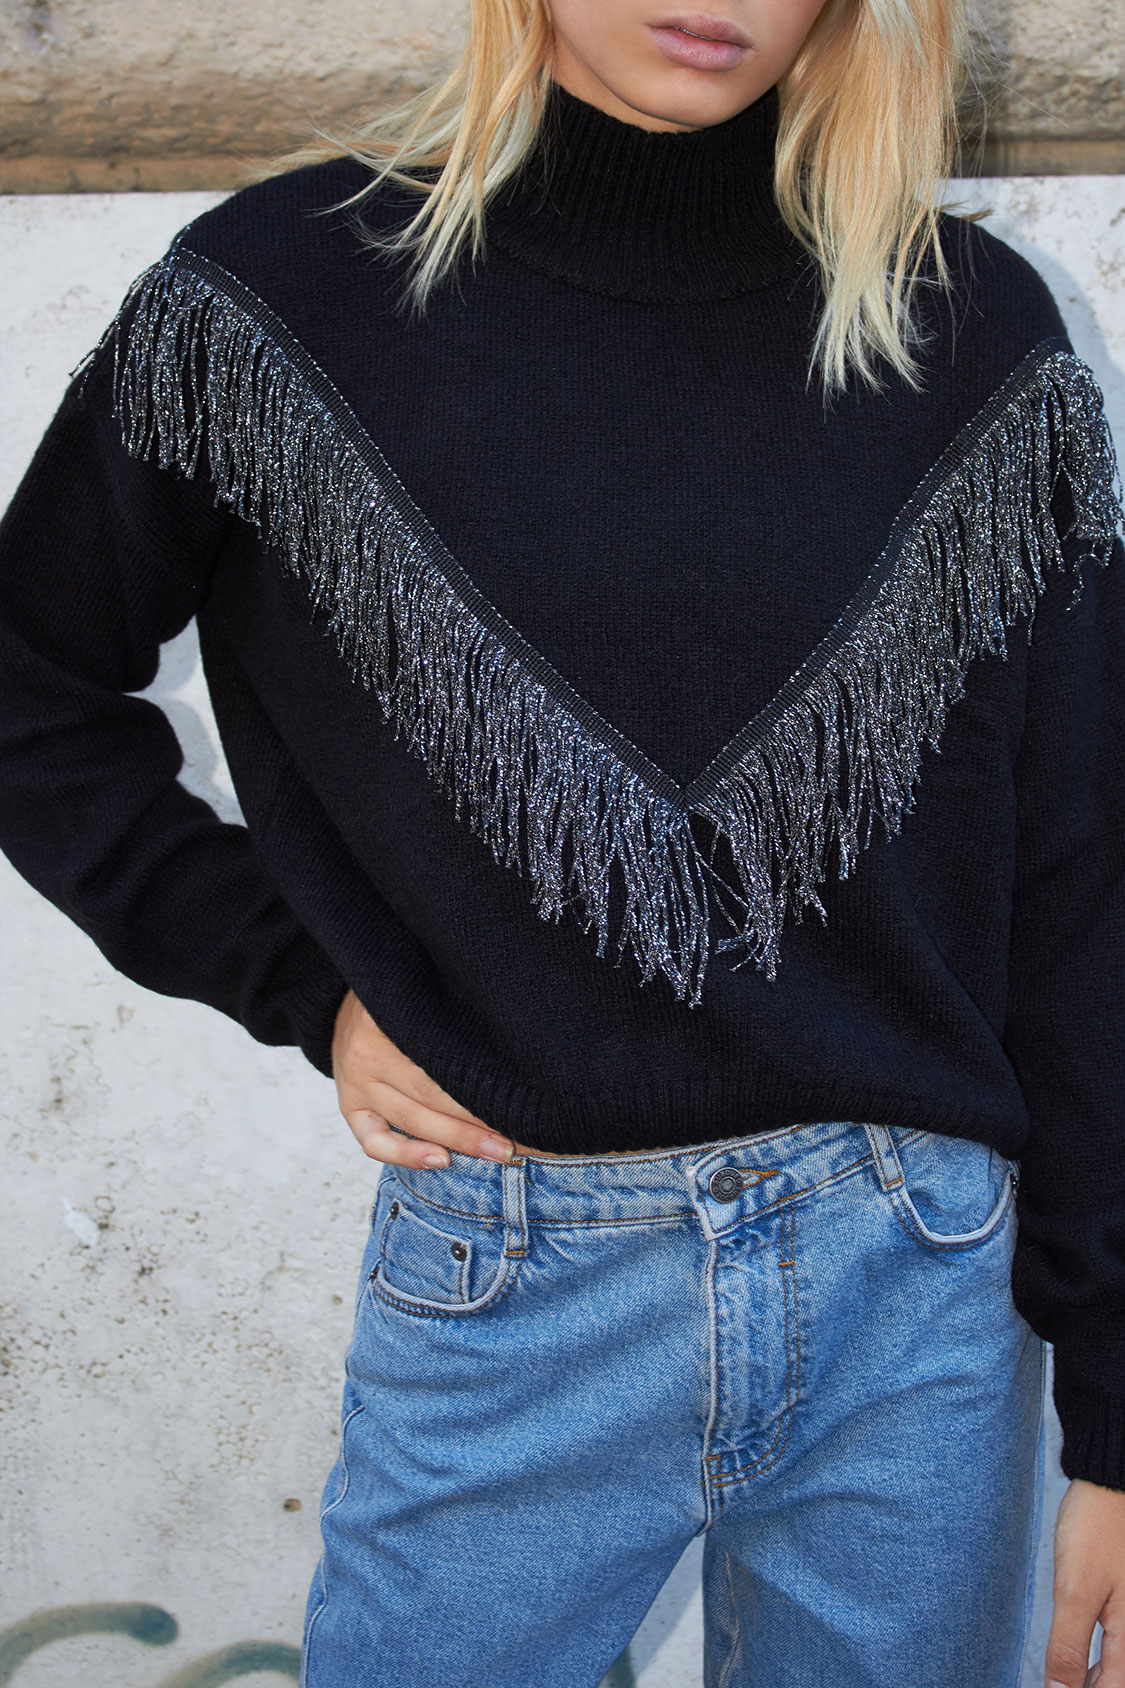 Fringed turtleneck sweater